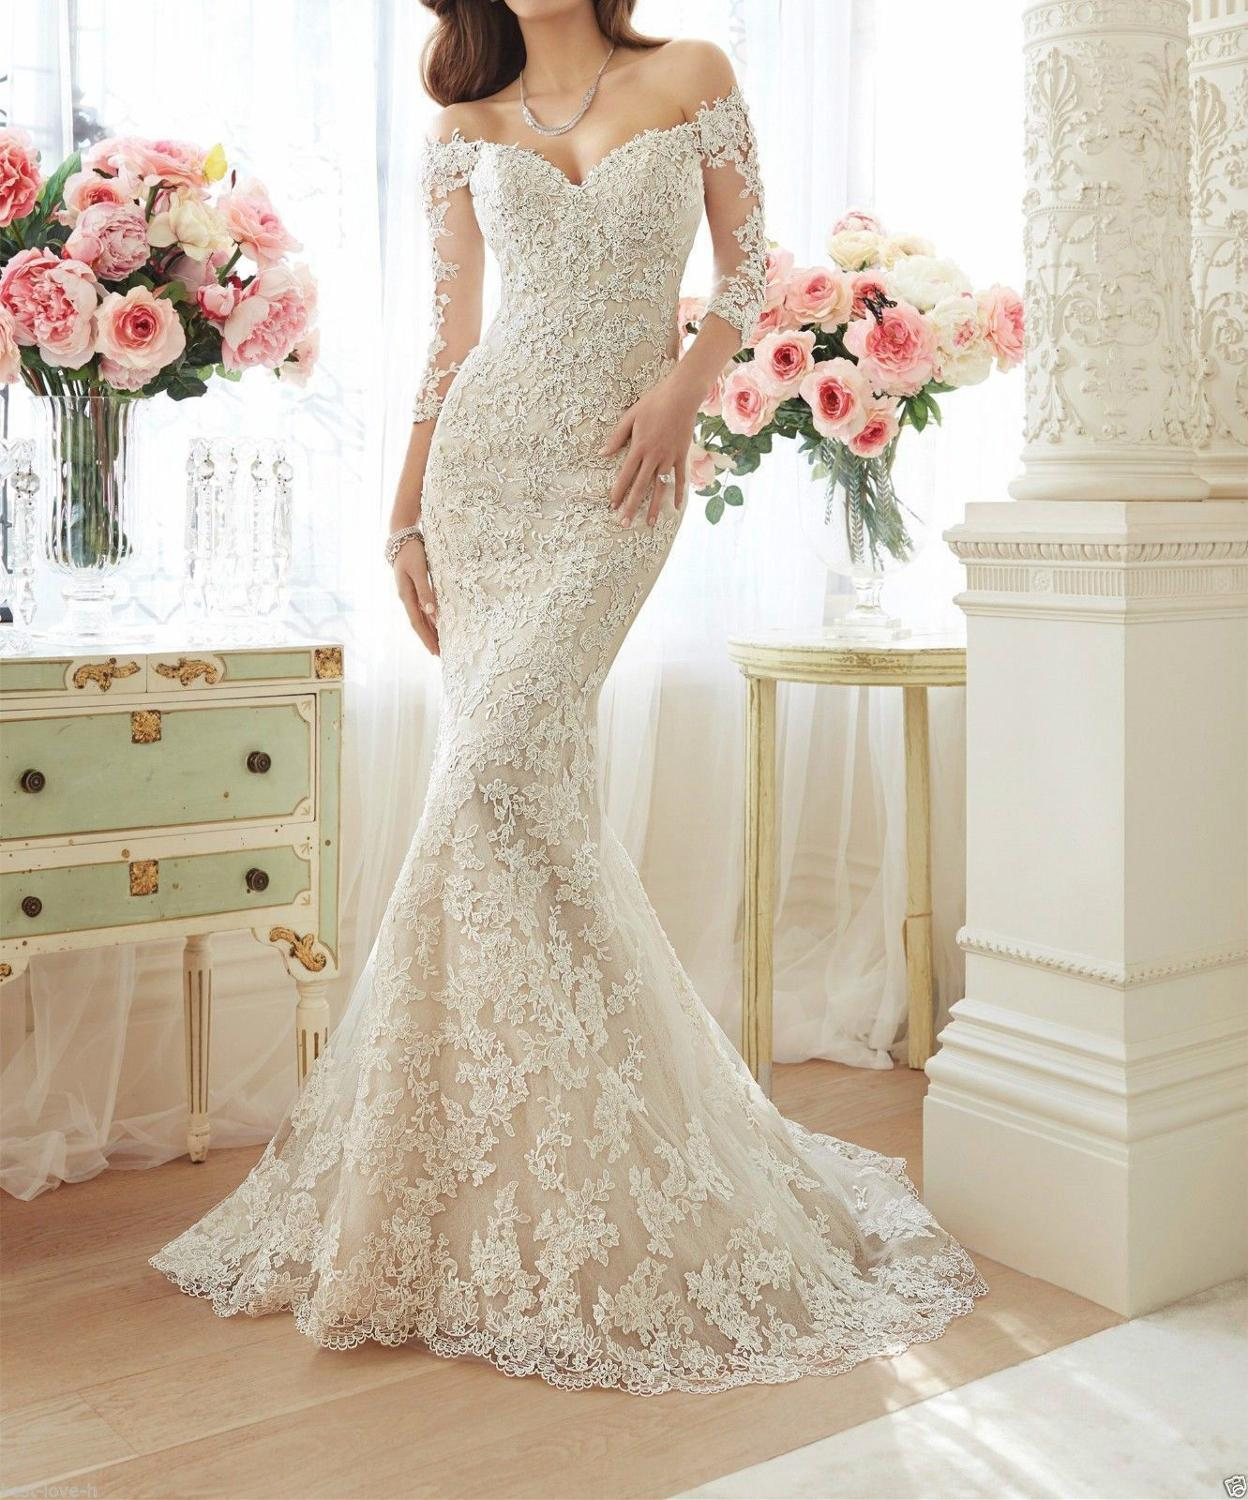 Elegant Off The Shoulder Half Sleeve Mermaid Wedding Dress 2019 See Through Illusion Back White Bridal Gowns With Lace Appliques